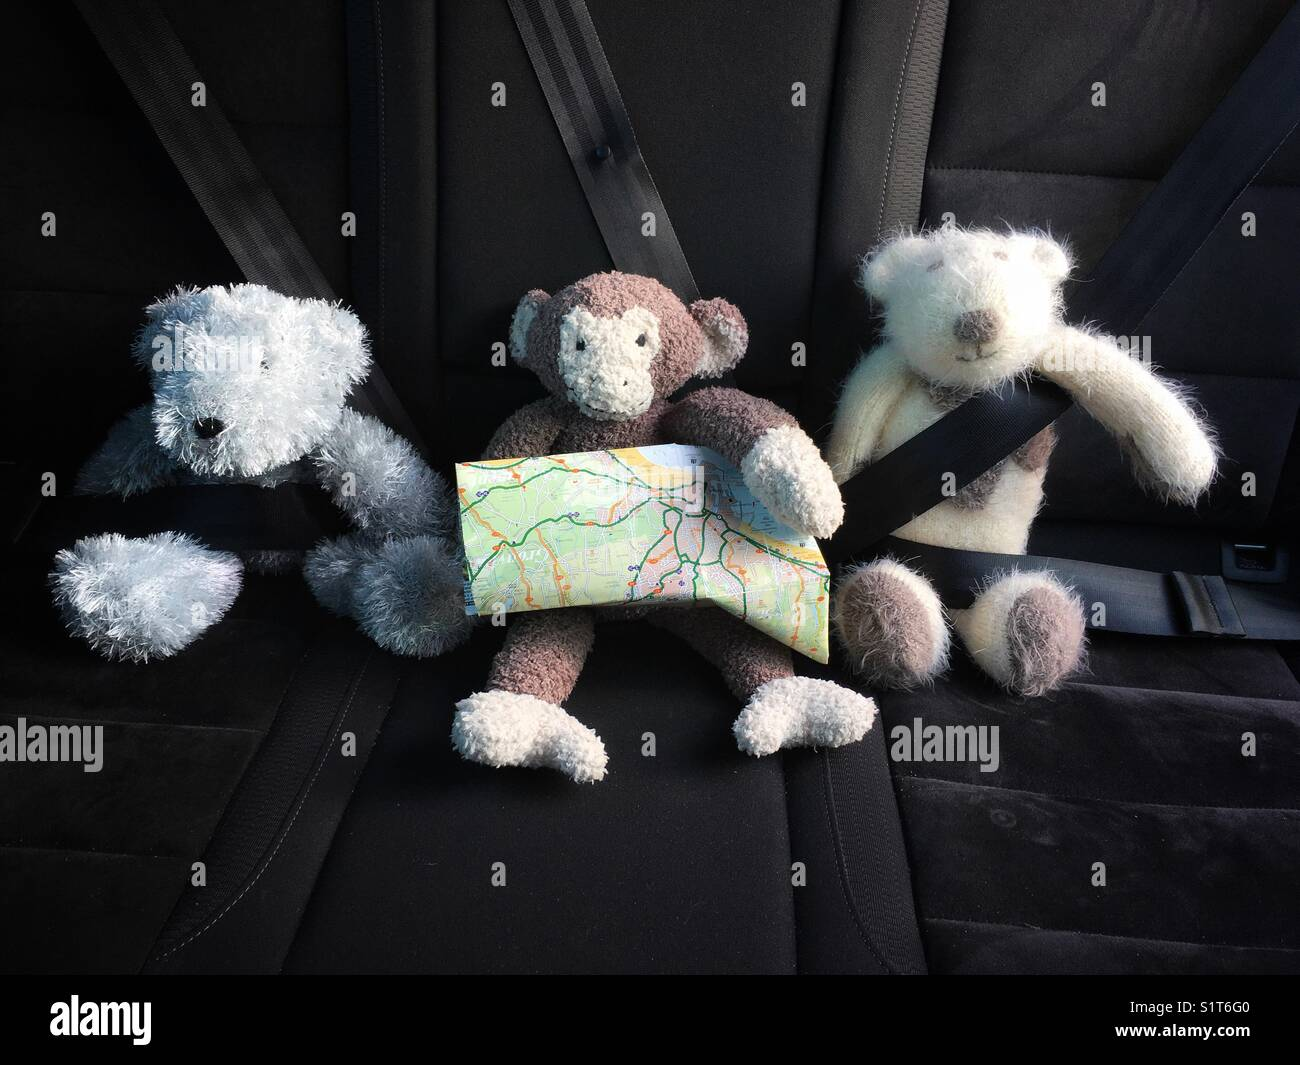 Children's soft toys strapped into the bag seat of a car about to embark on a journey. - Stock Image